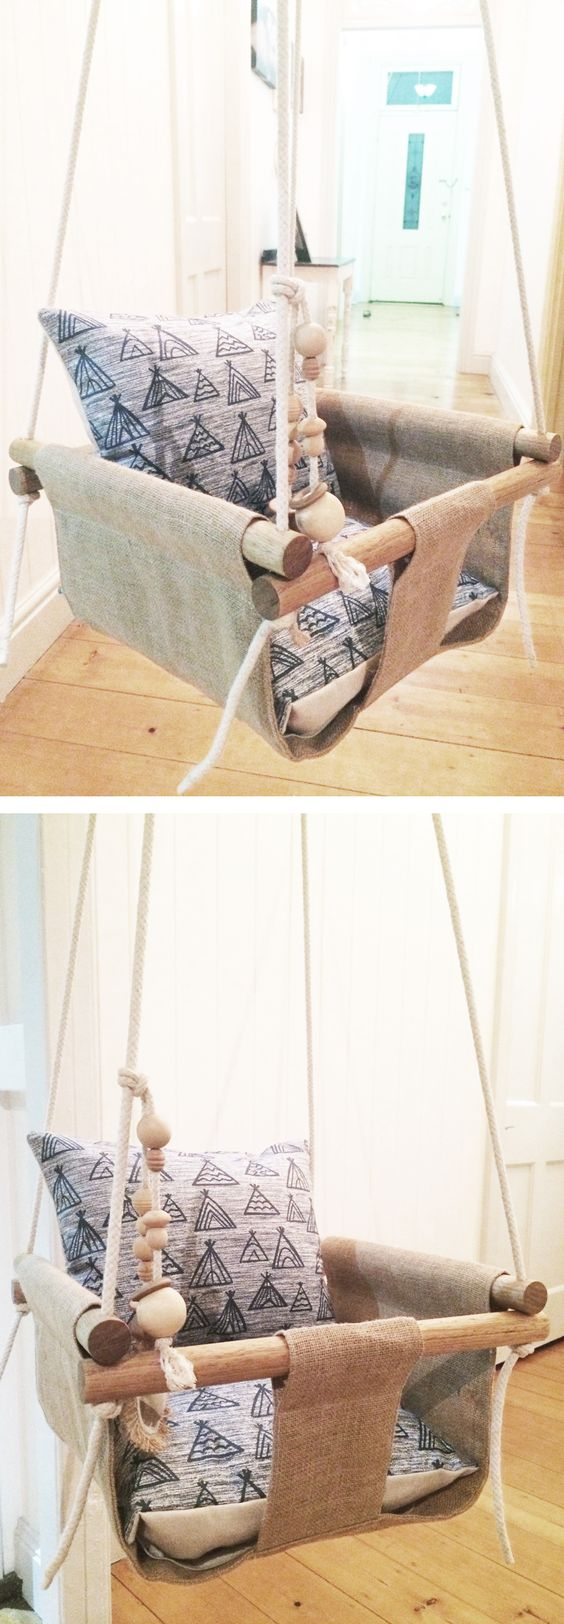 HandmadE Burlap Baby Swing Will Be a Perfect Gift for a Toddler Mom.